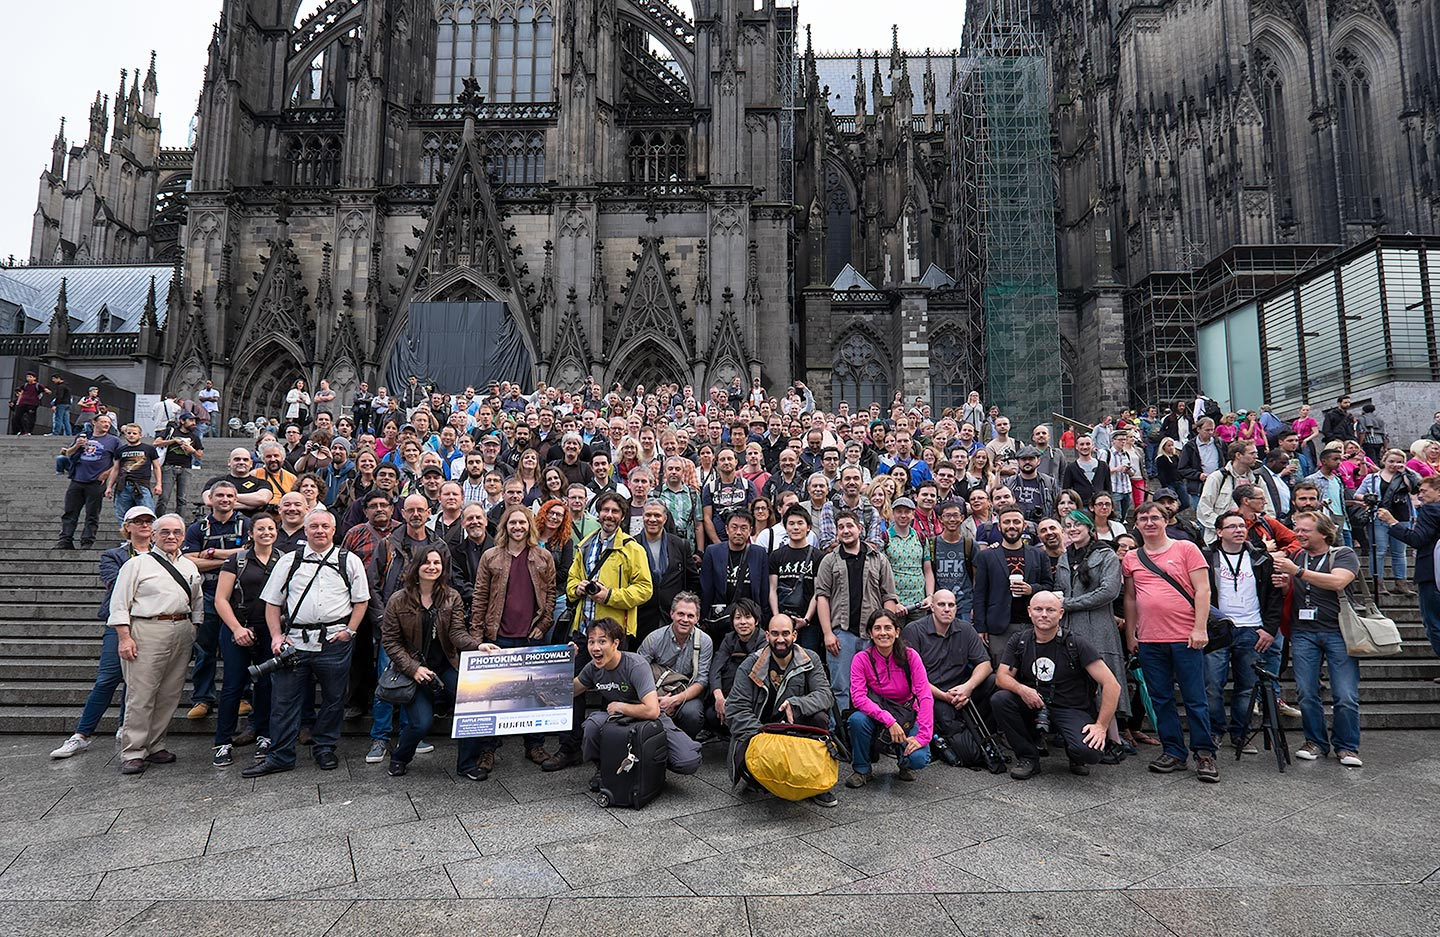 2014-Photokina-Photo-Walk-Group-Shot